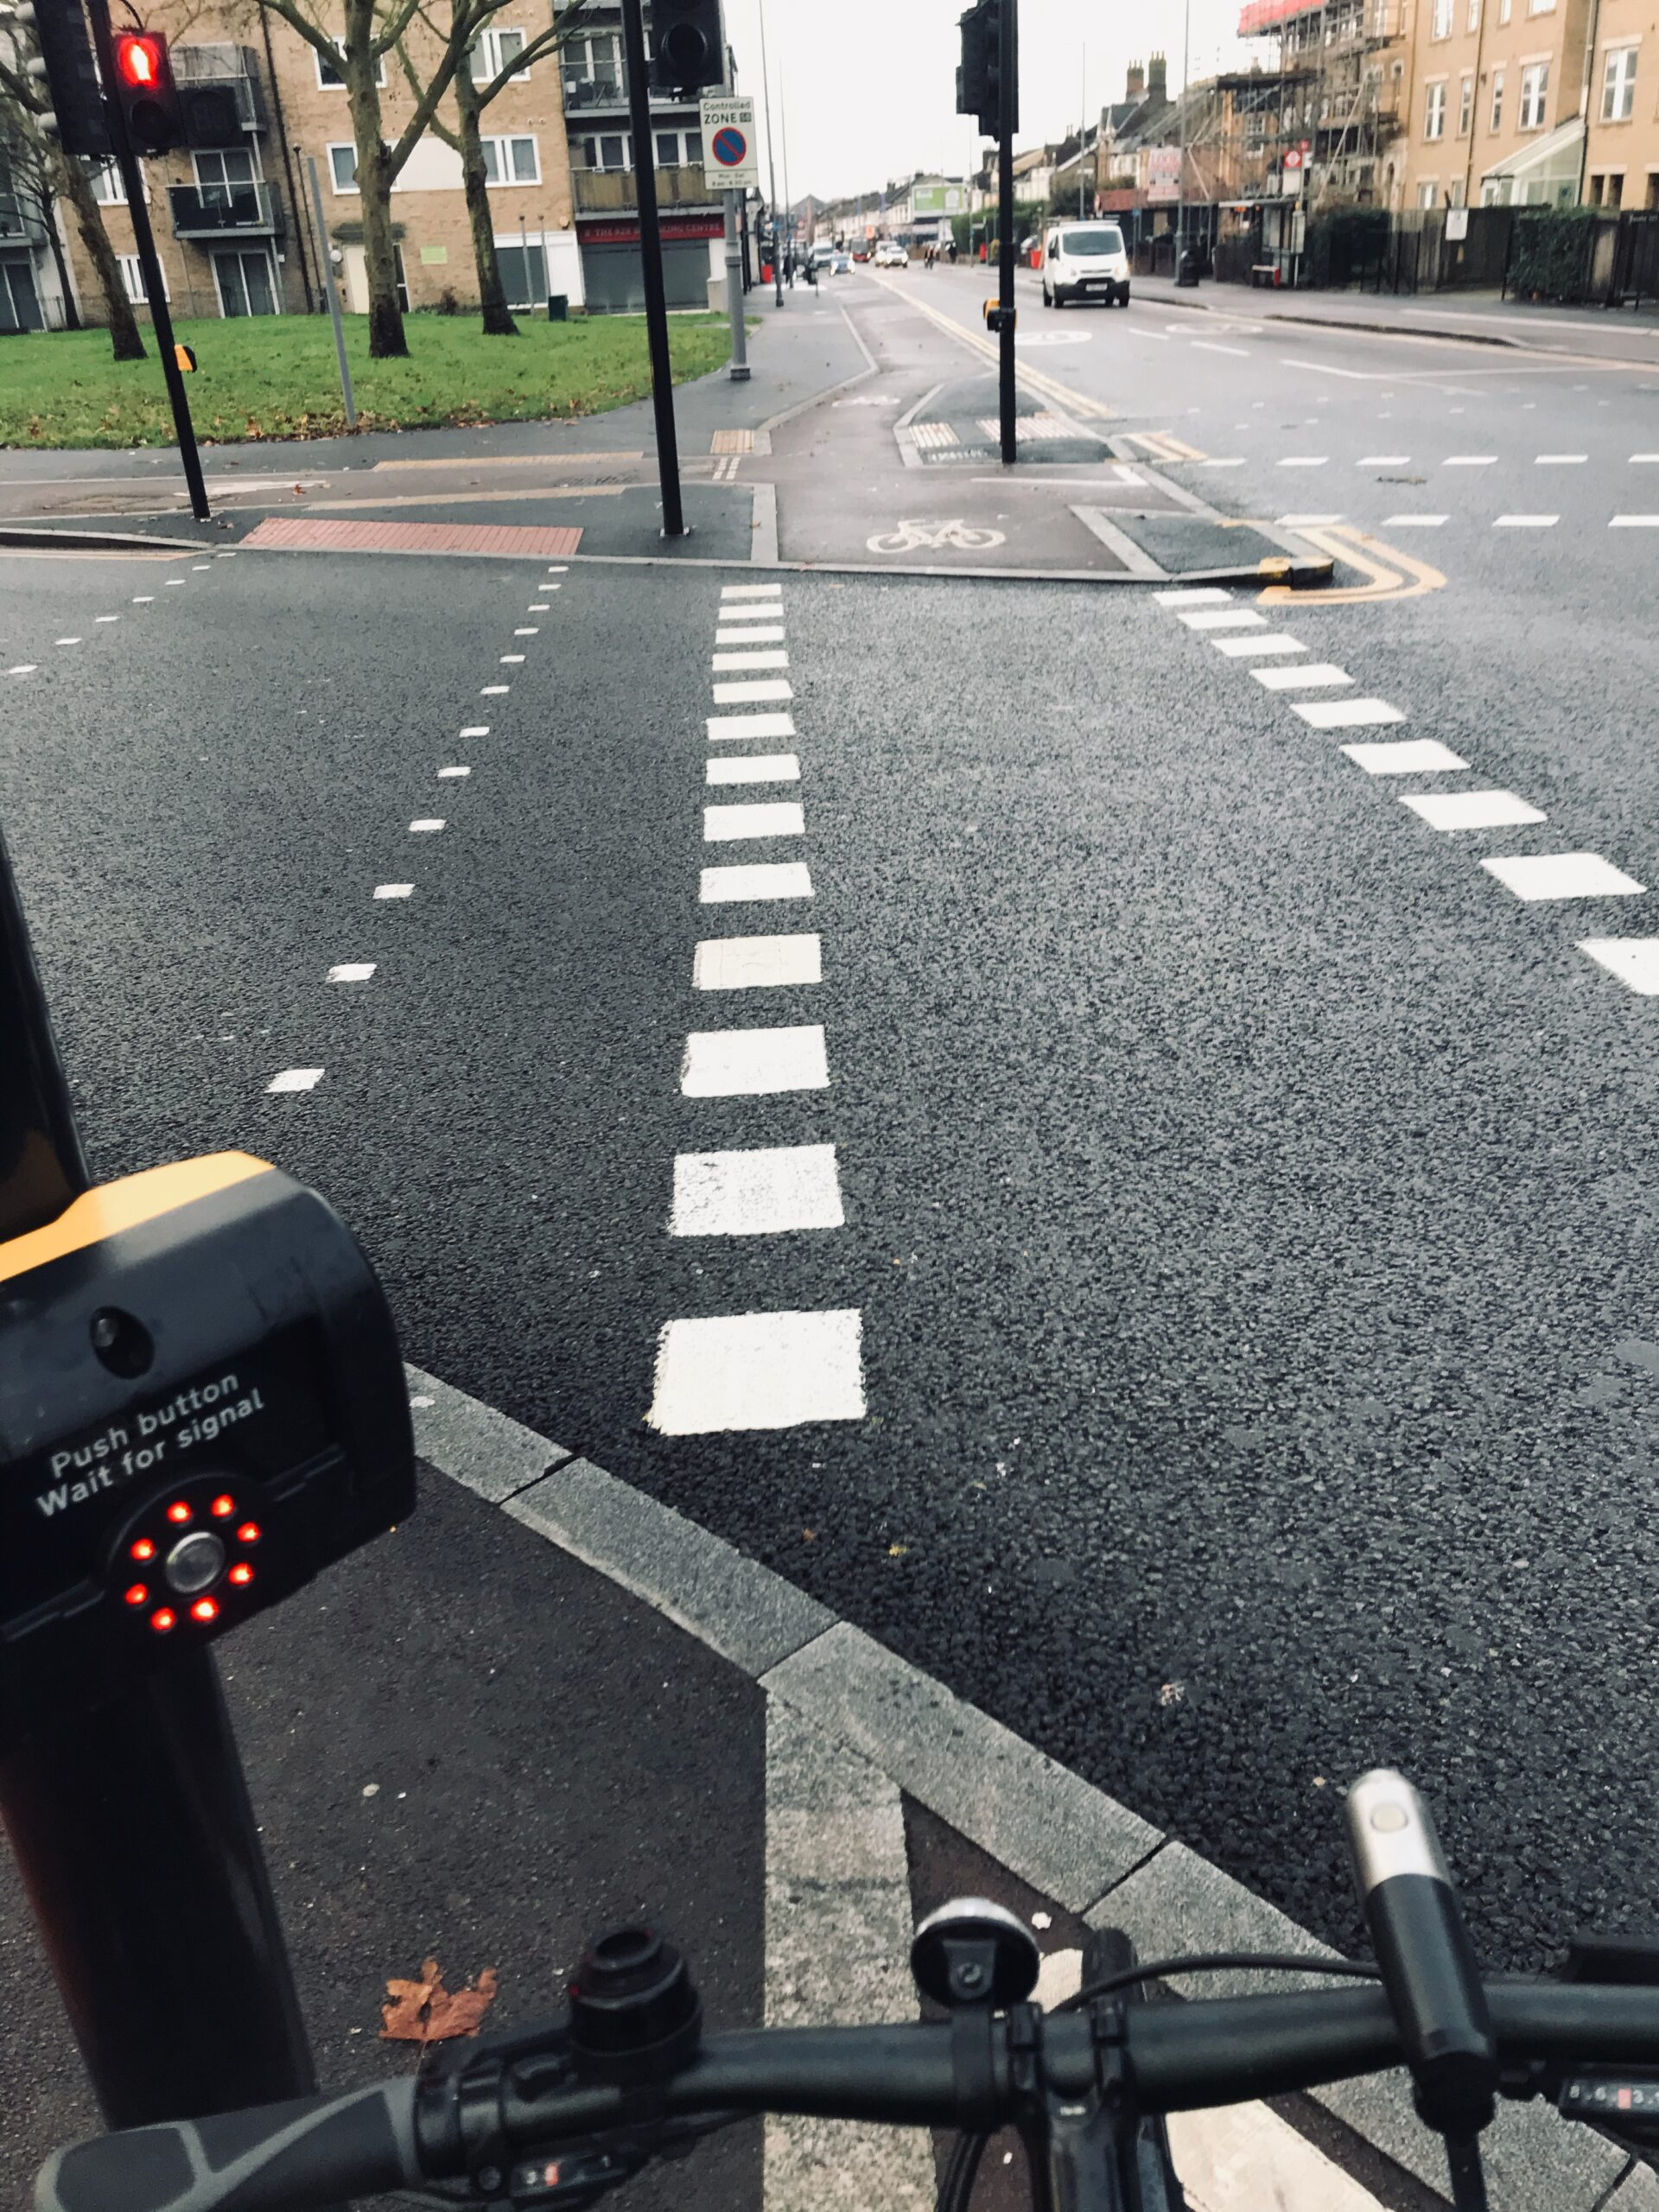 Leyton green road junction - cyclists' light